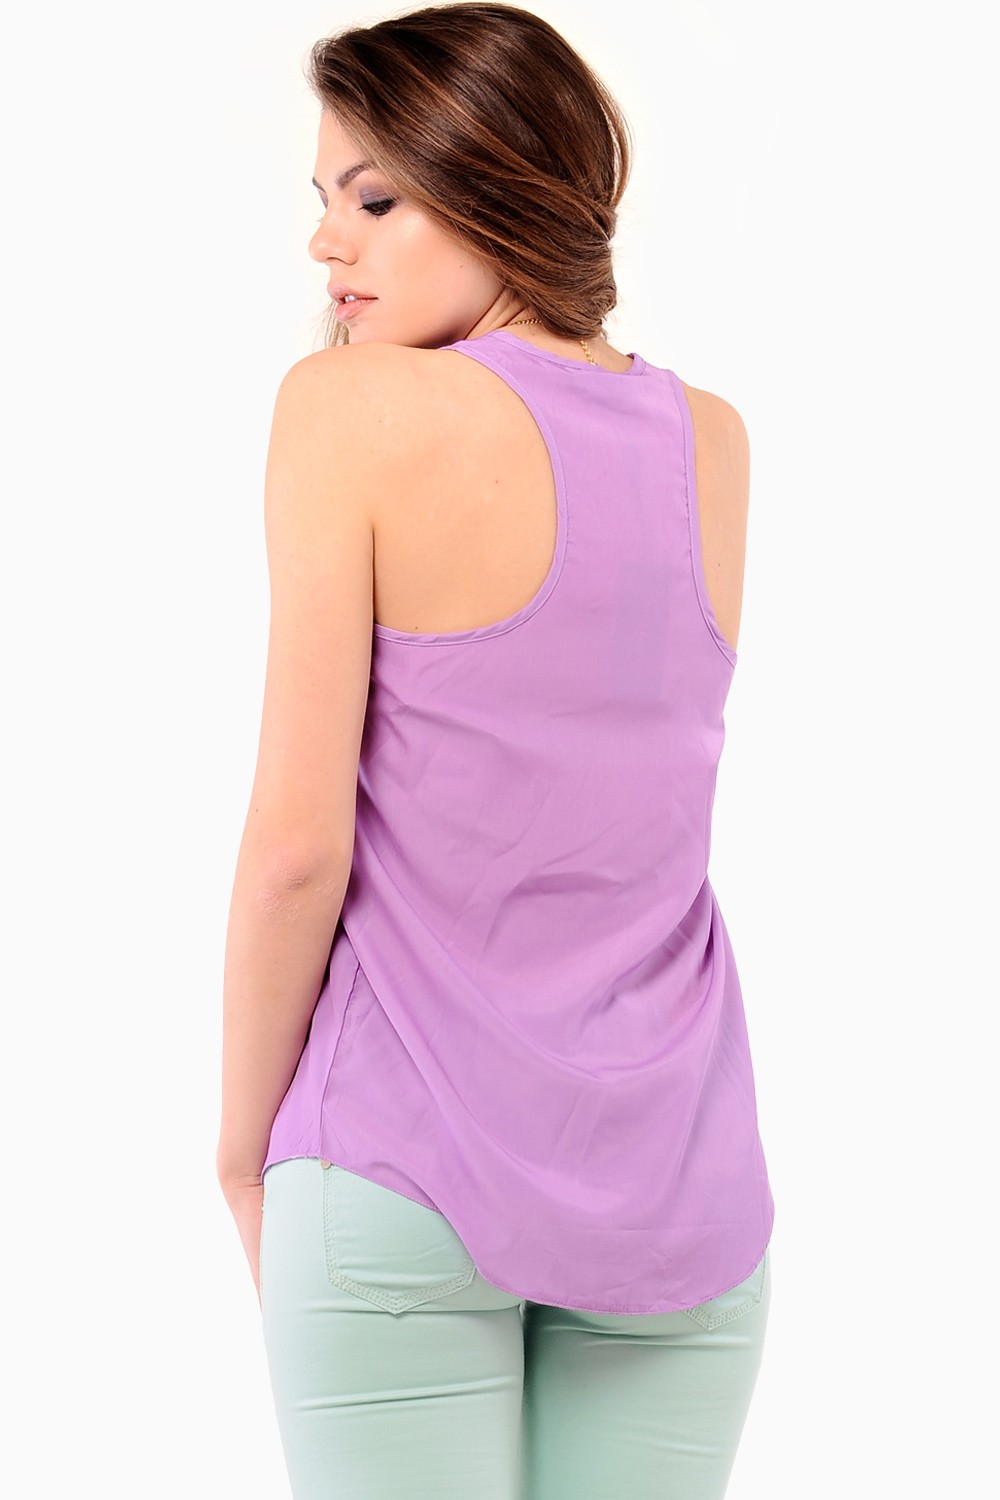 Marc Angelo Astrid Tank Top In Lilac